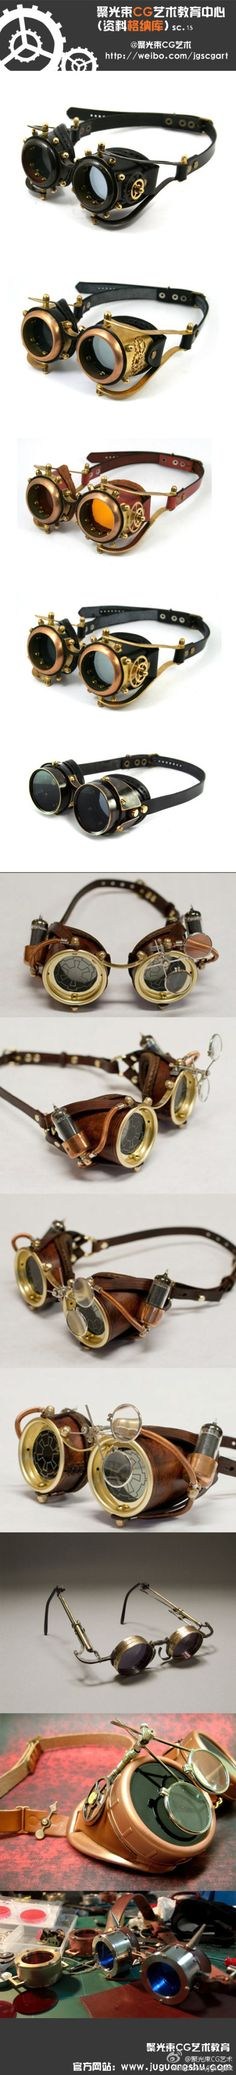 Cool steampunk eyewear.